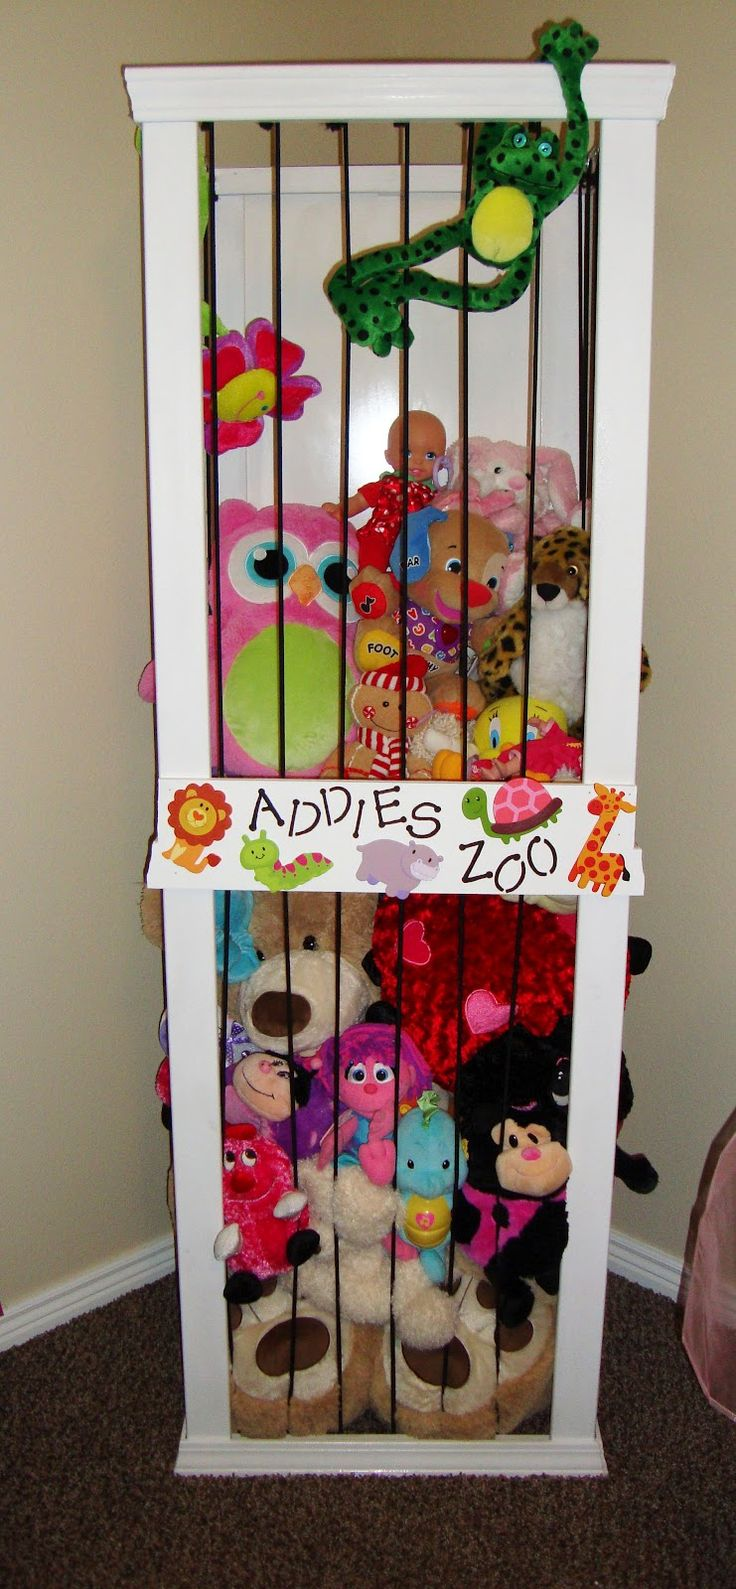 Great idea for all those stuffed animals!